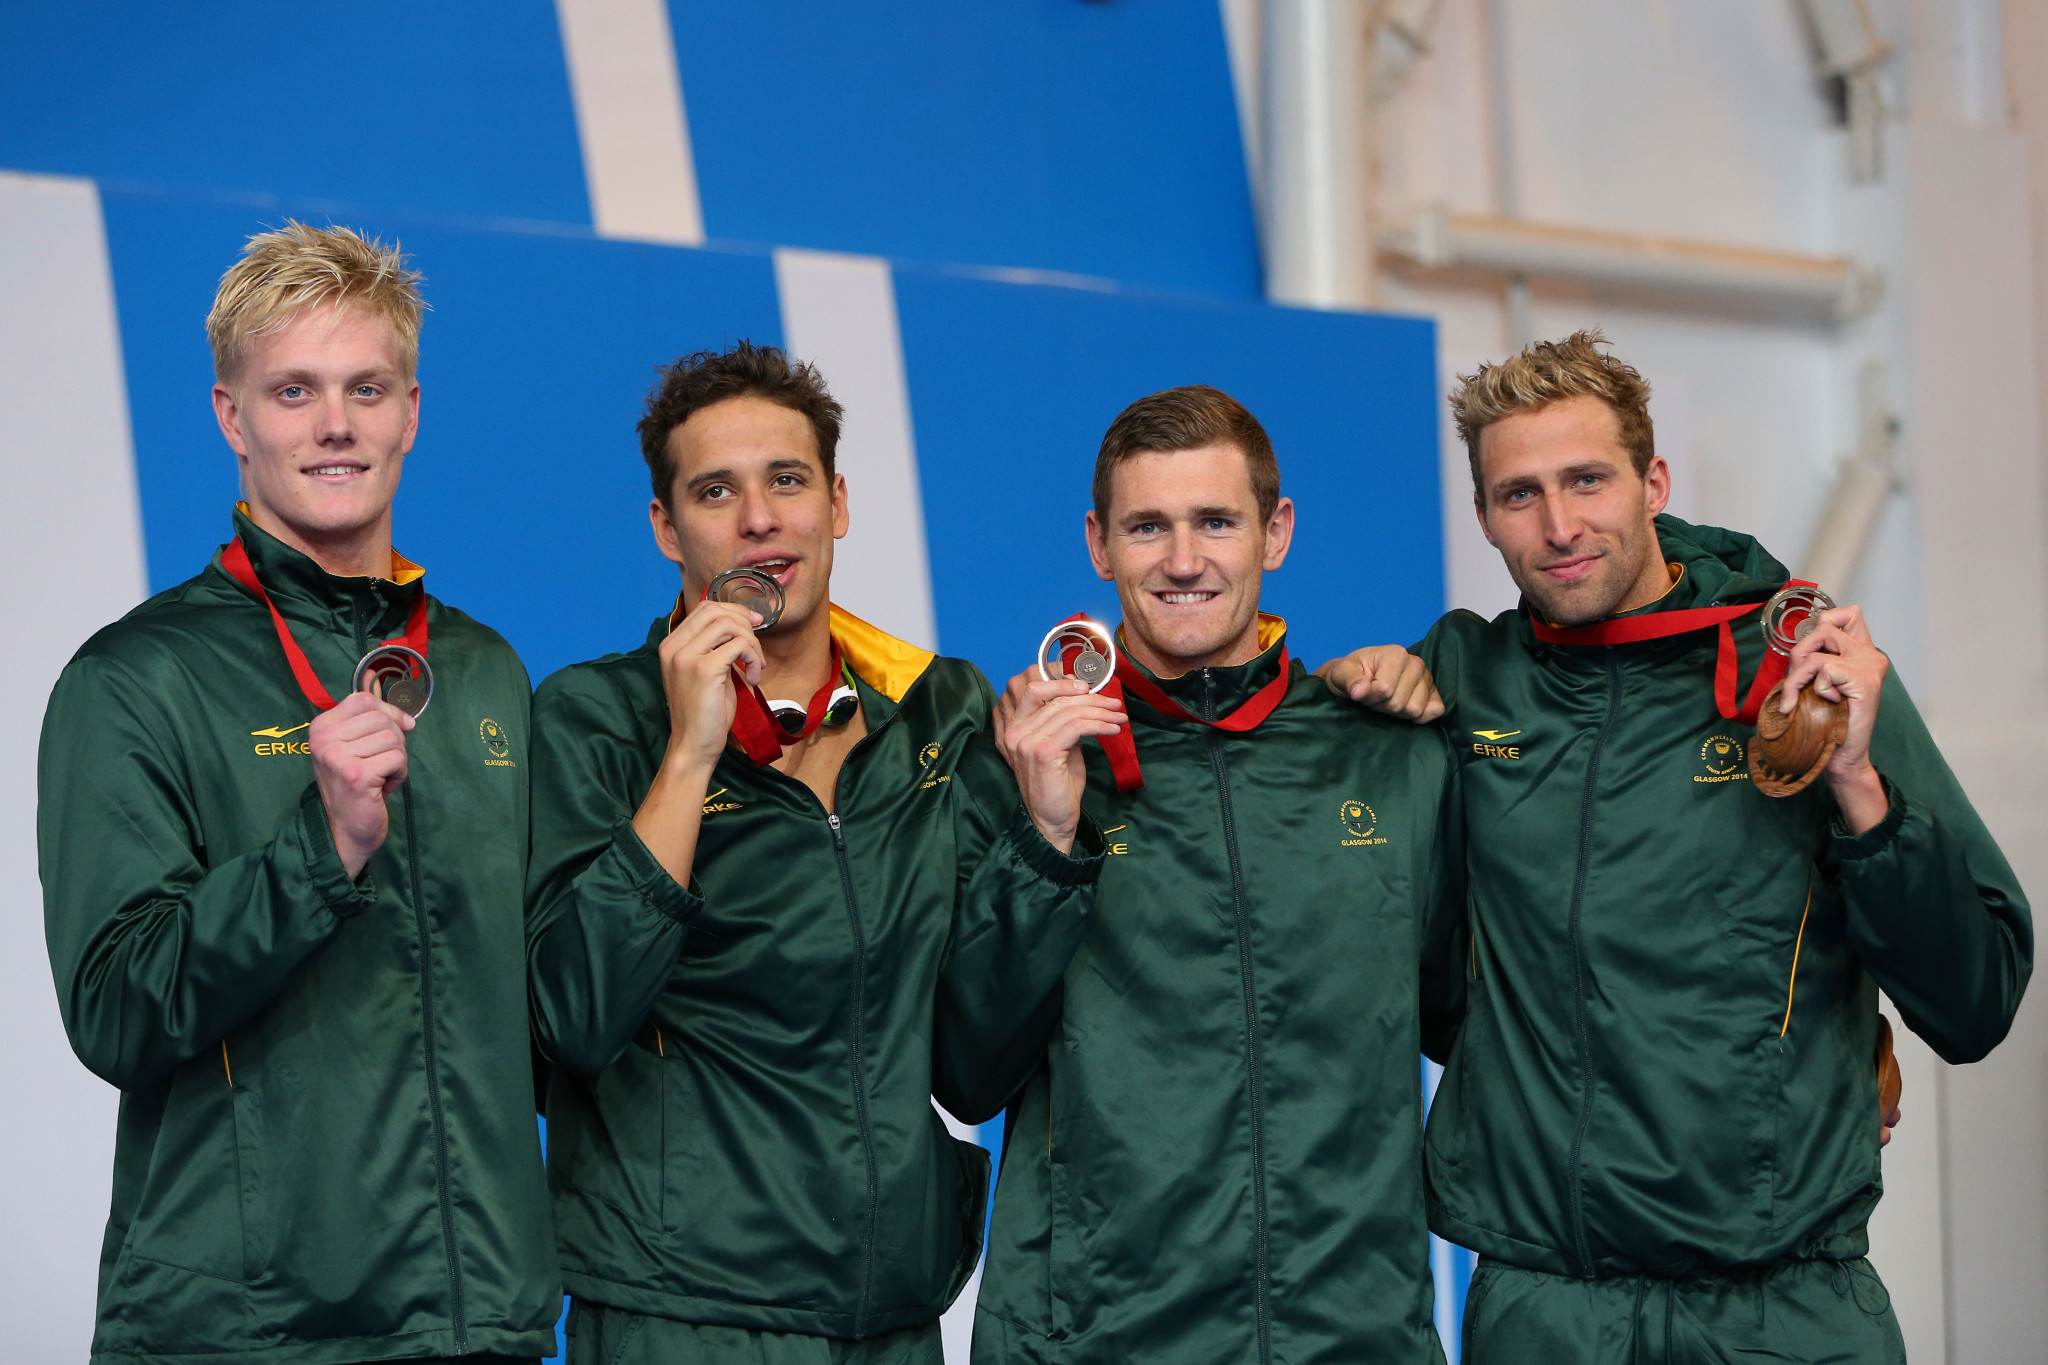 Relays have contributed to six of Chad le Clos' Commonwealth Games medals and would be crucial to his attempts to break the medals record ©Getty Images